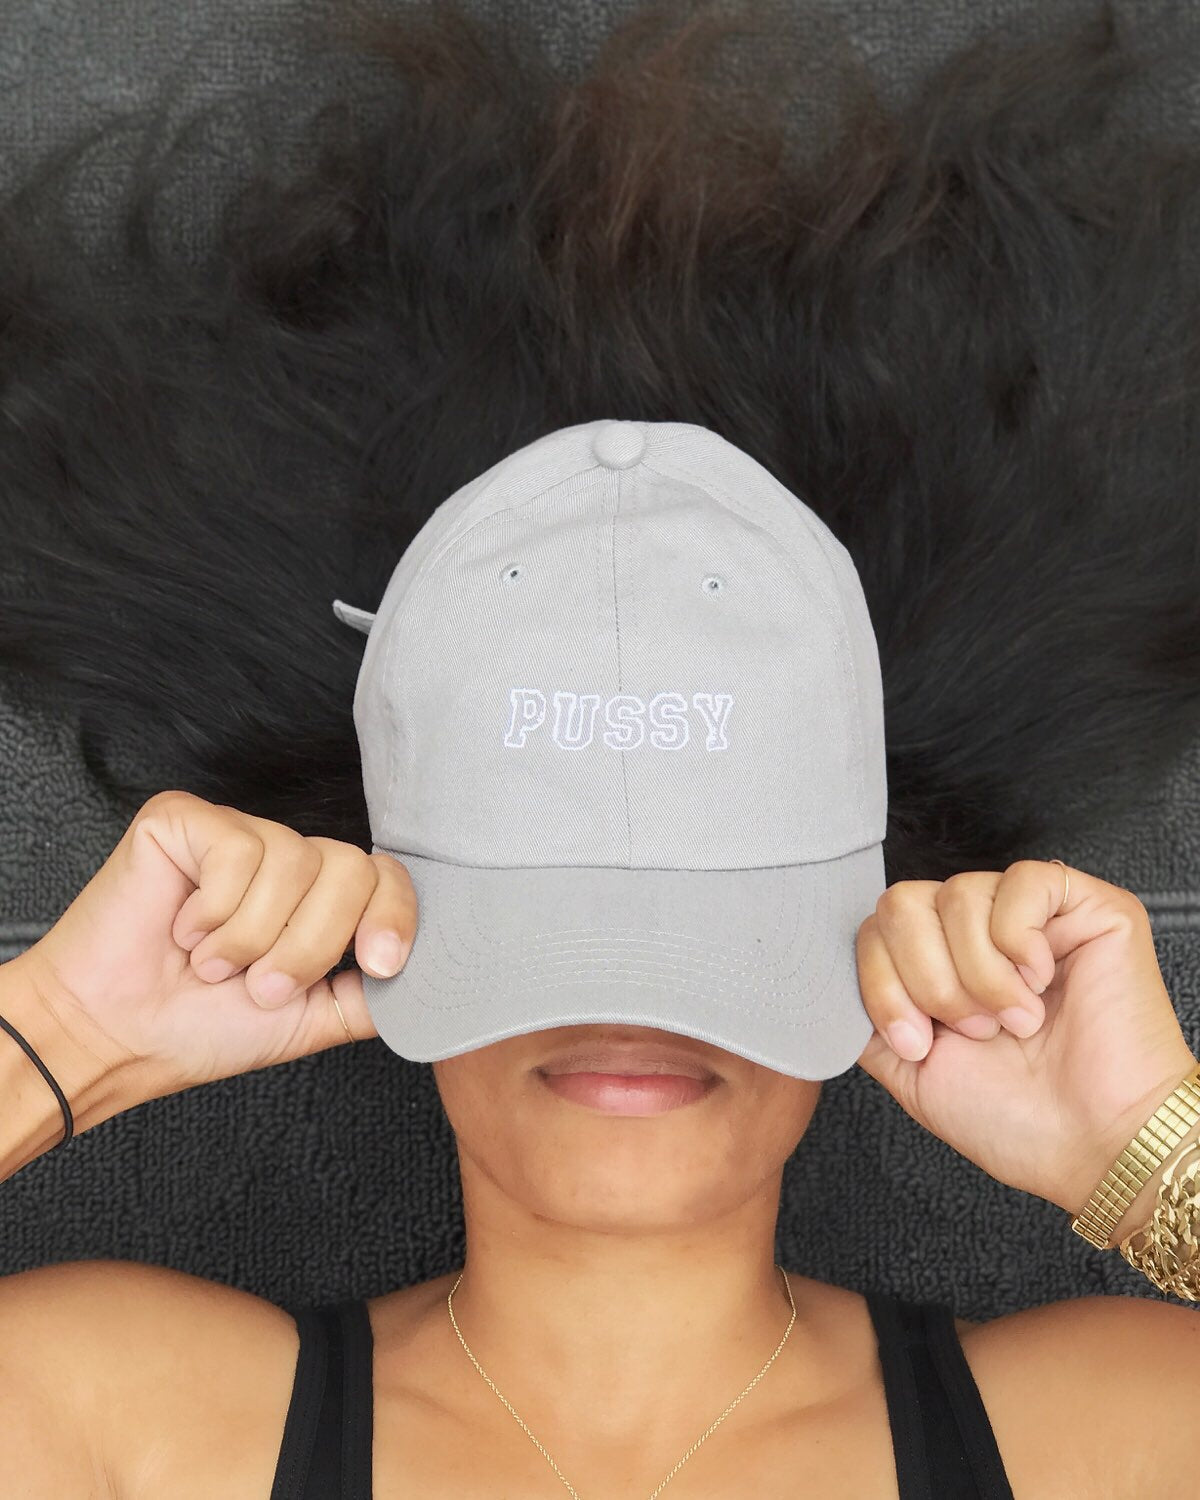 PUSSY cap, gry/wht